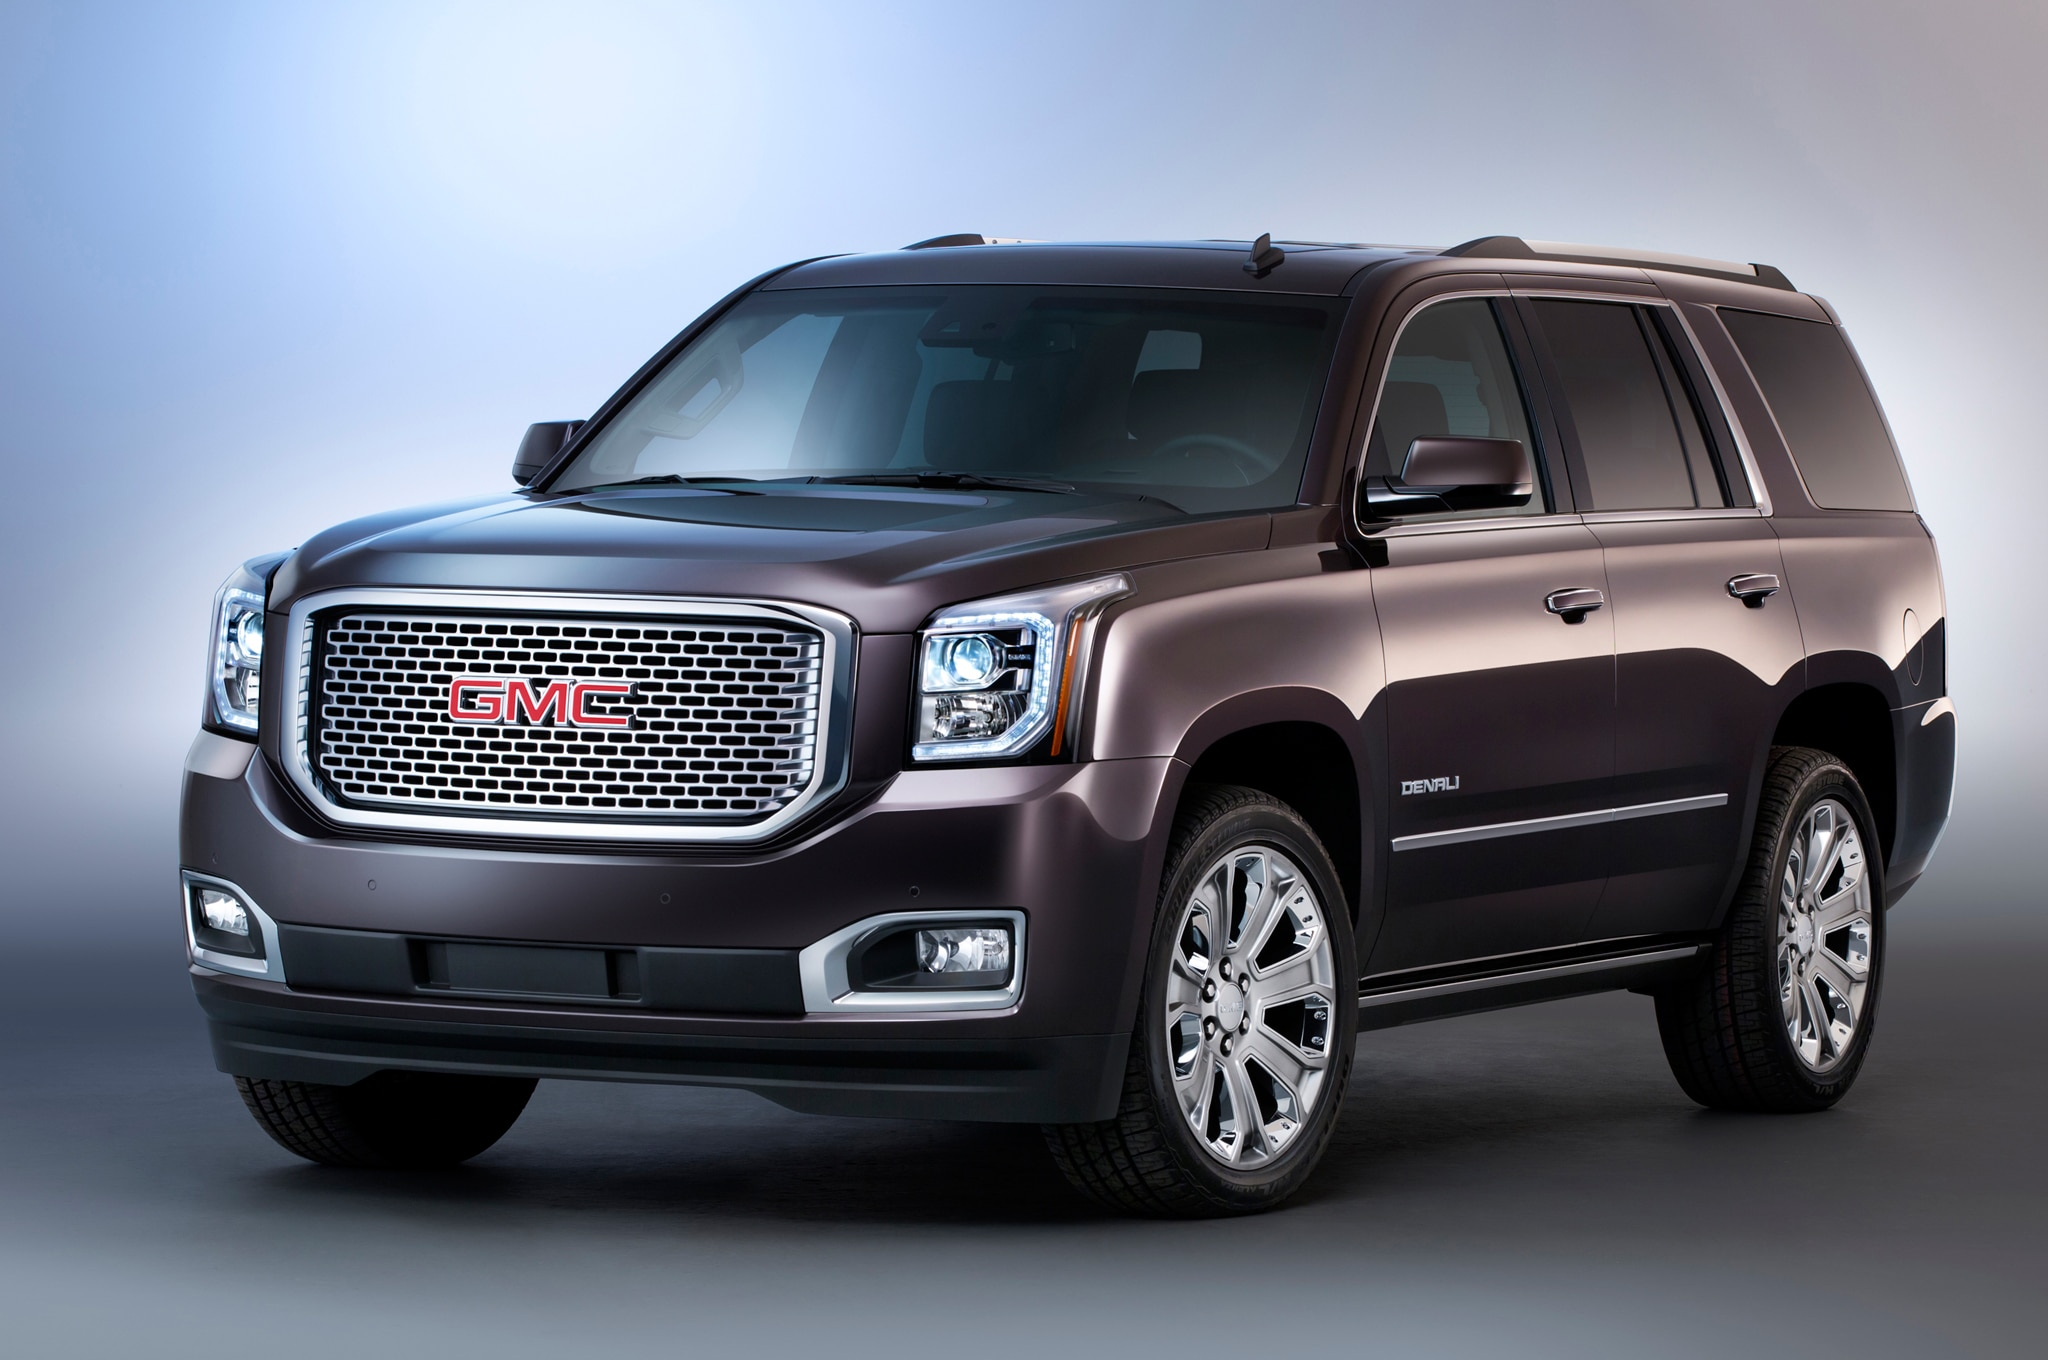 2015 GMC Yukon Denali front three quarters